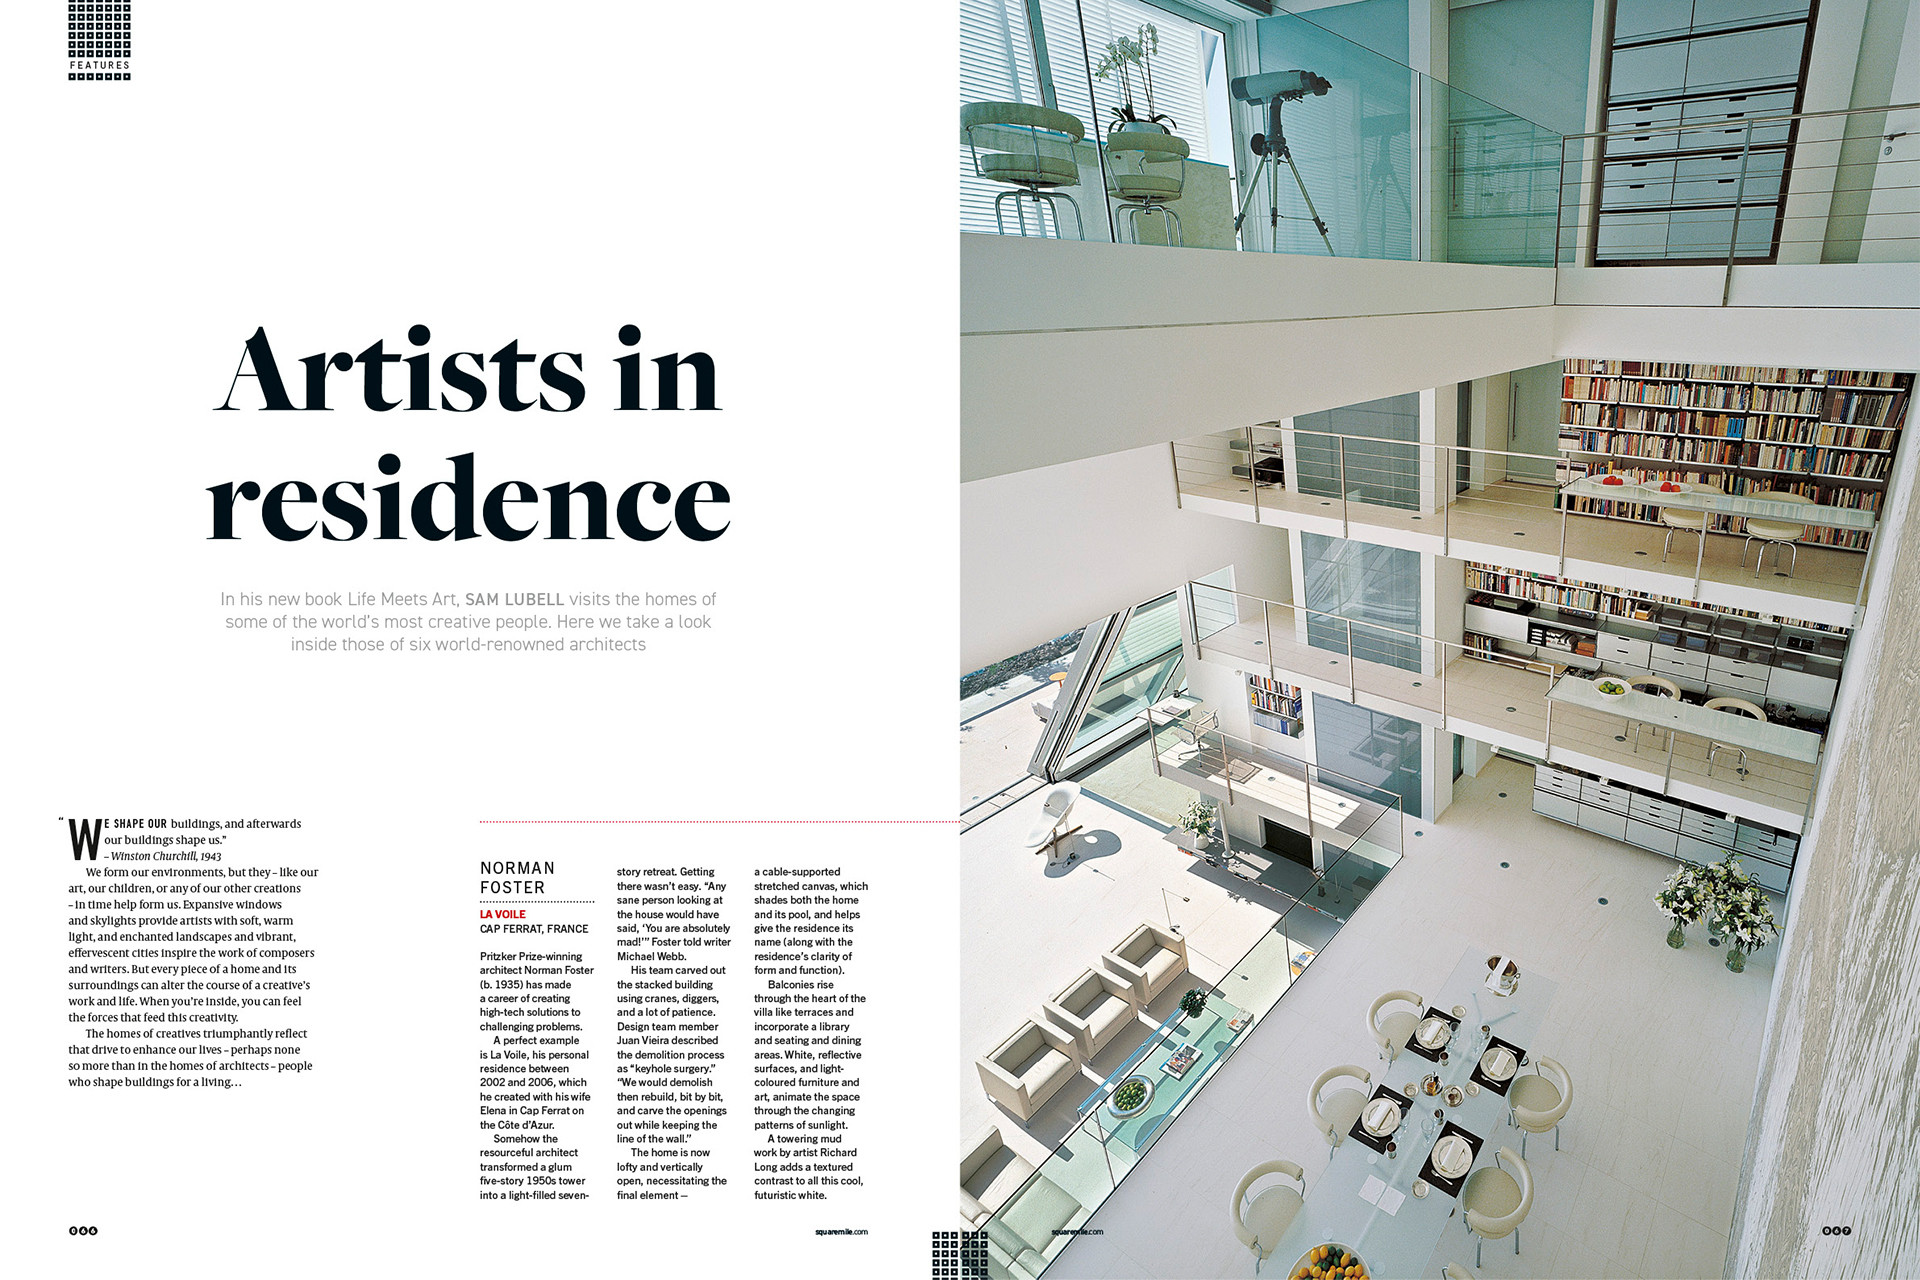 Architects' houses for Square Mile magazine